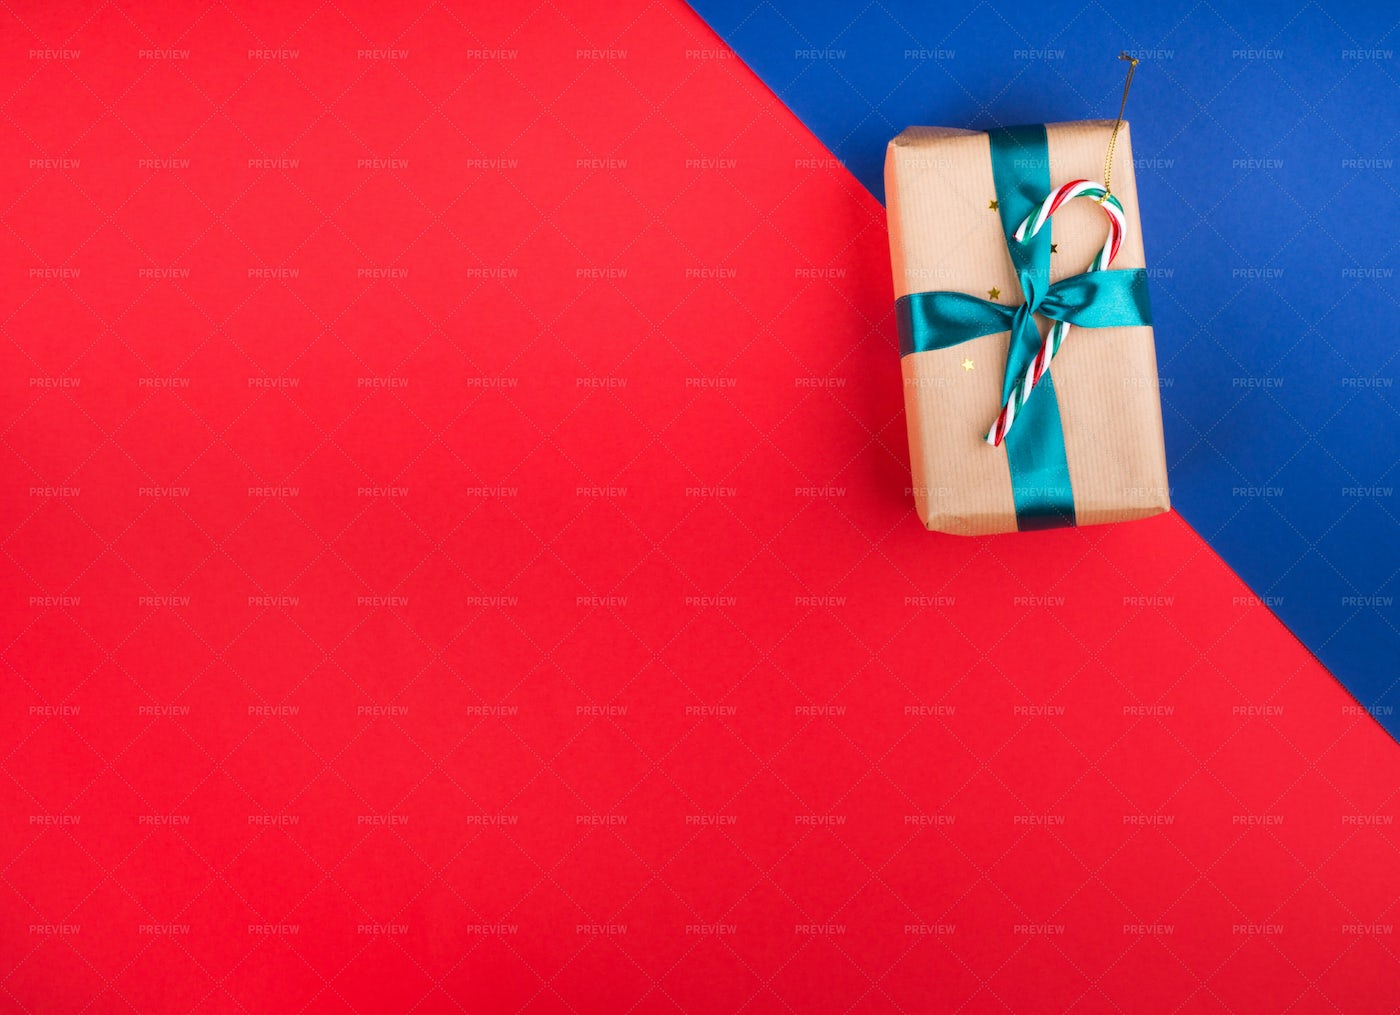 Red Background With Present: Stock Photos